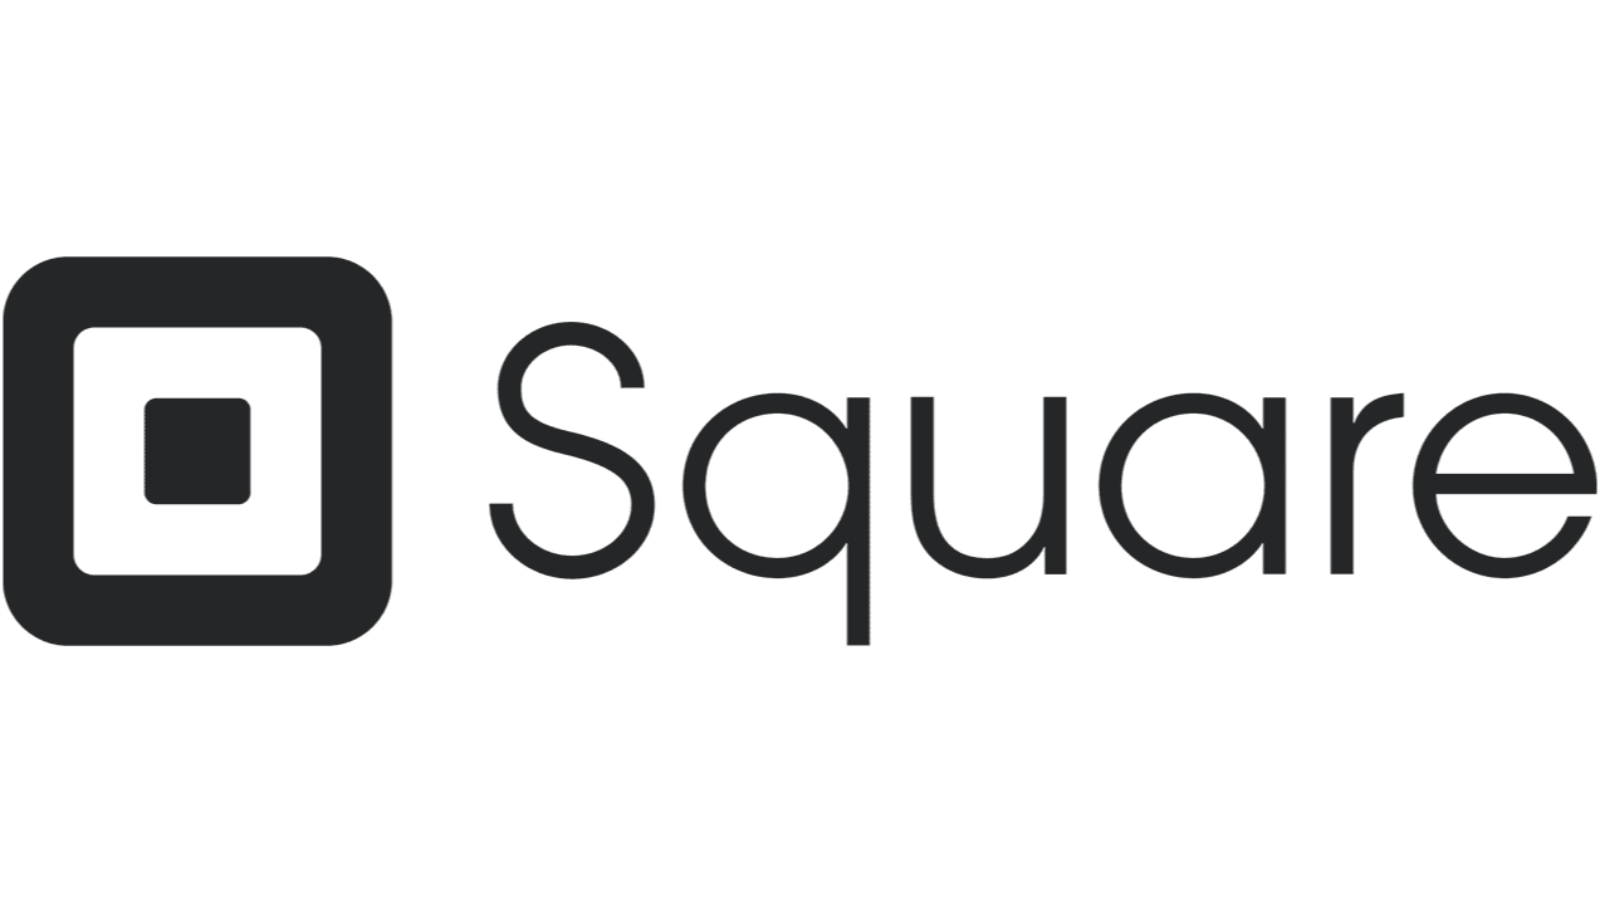 Thumbnail for news article called STATION F announces partnership with Square